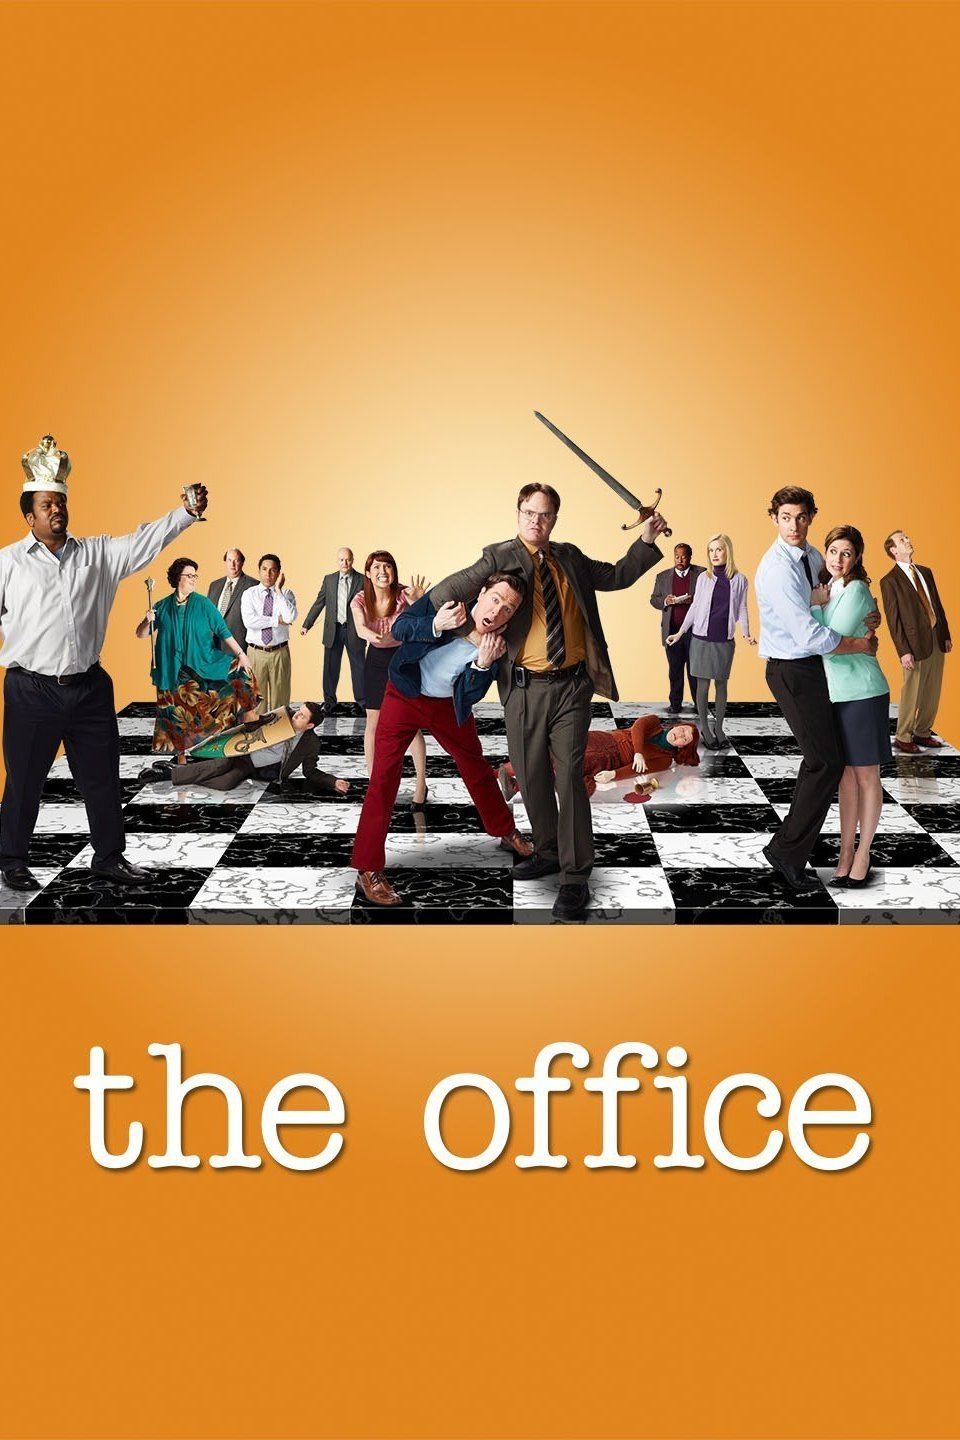 The Office - I'm a thousand years late on The Office train. This mockumentary series is about the office antics surrounding a mundane paper sale's company located in Scranton, Pennsylvania.Available on Netflix